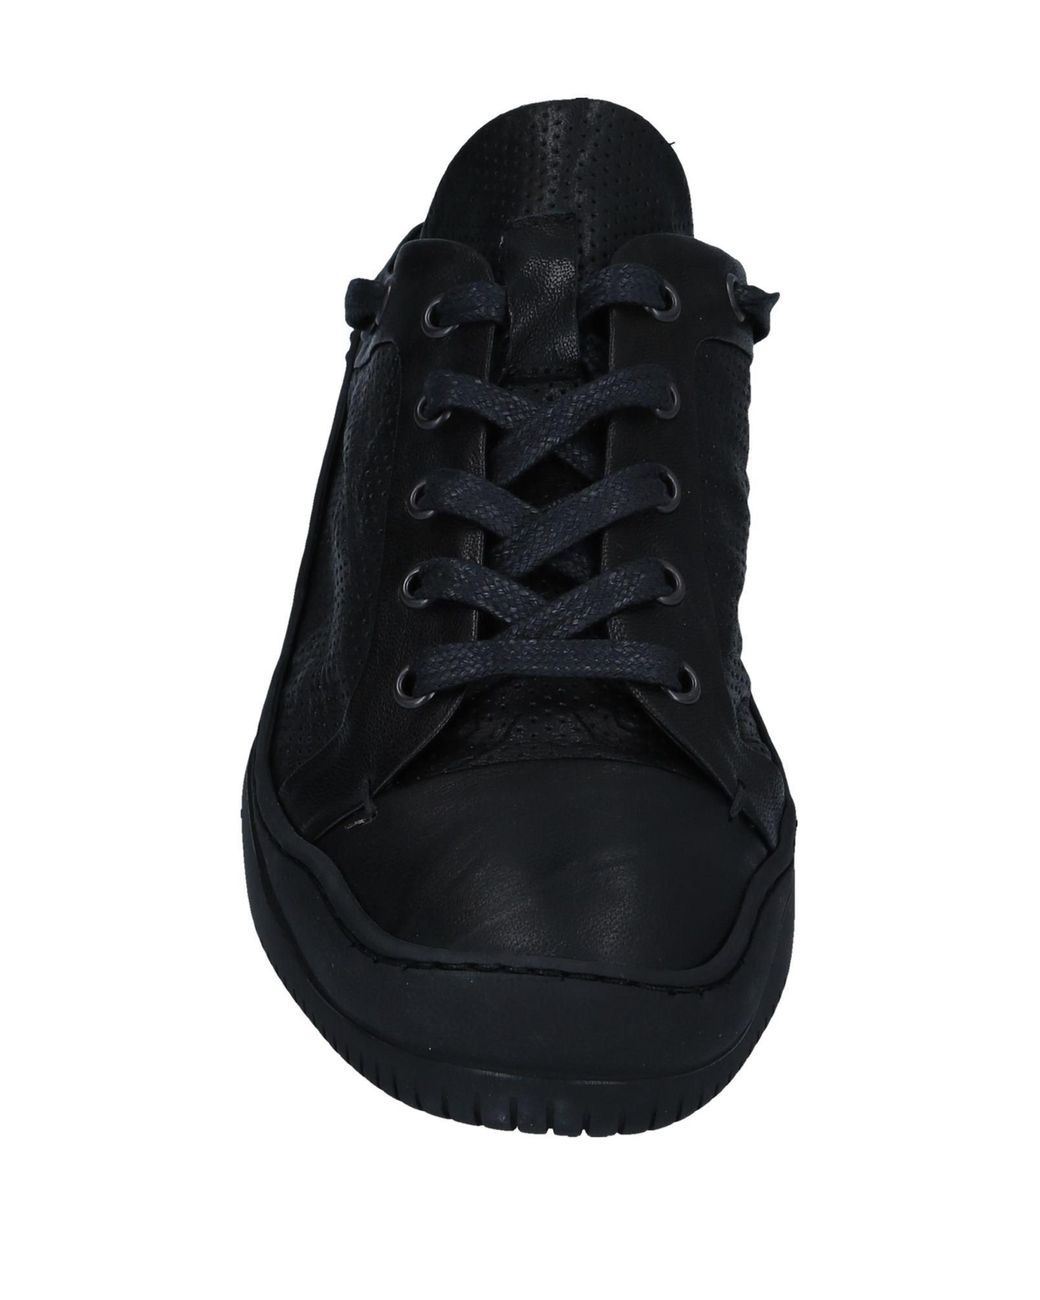 Masnada open back black sneakers